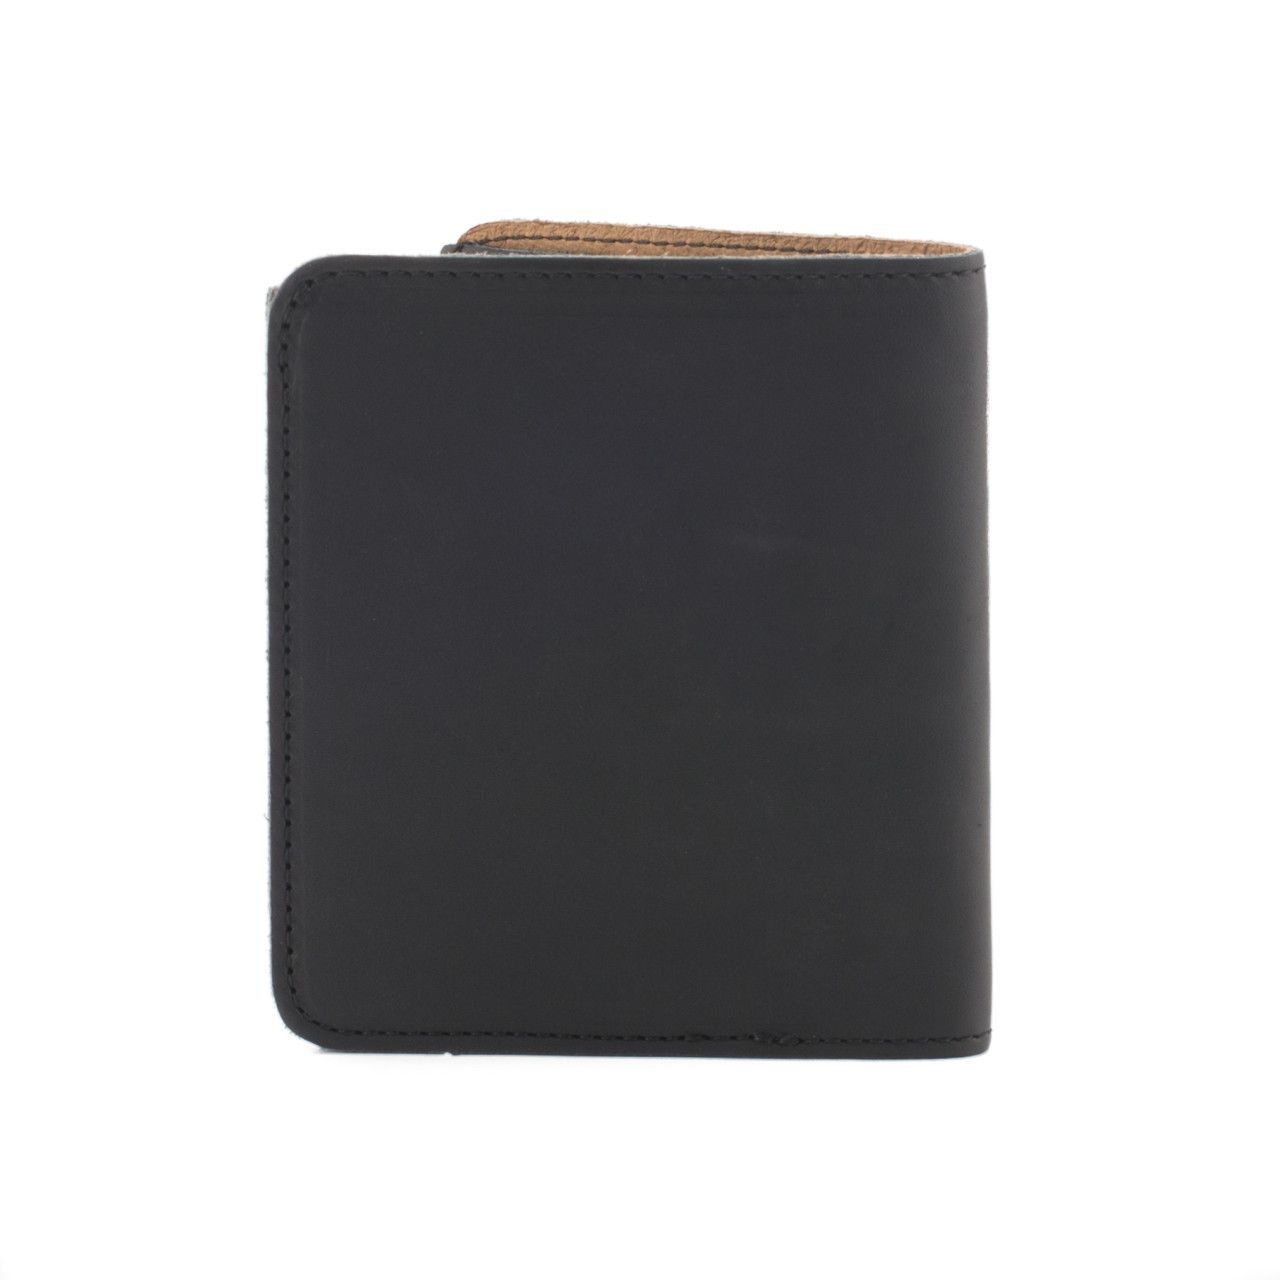 large leather bifold wallet large in black leather